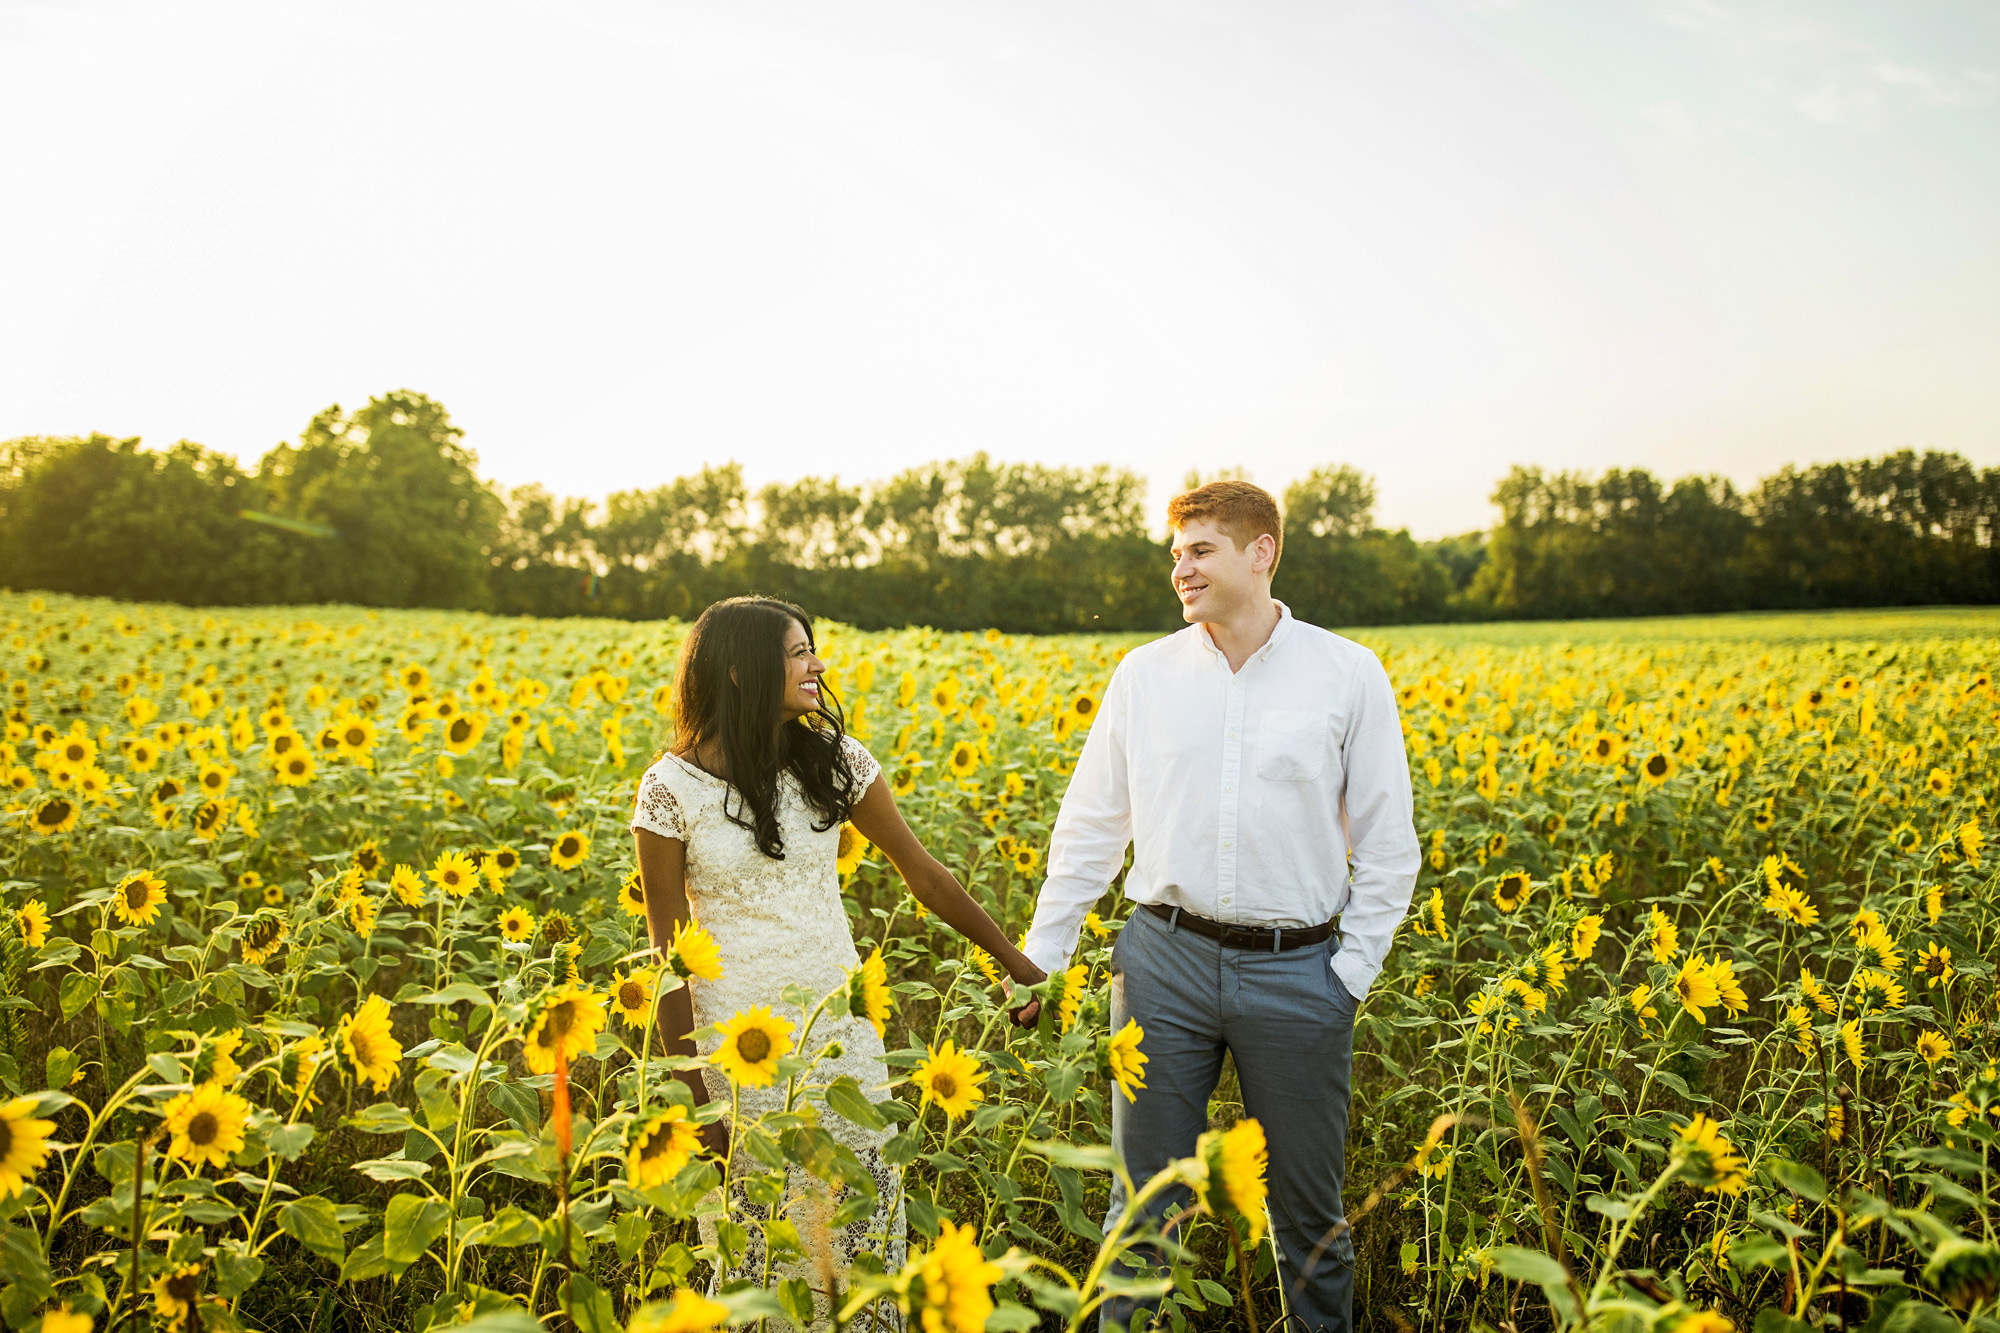 Seriously_Sabrina_Photography_Lexington_Midway_Kentucky_Engagement_Merefield_Sunflowers_Naz_and_Drew17.jpg